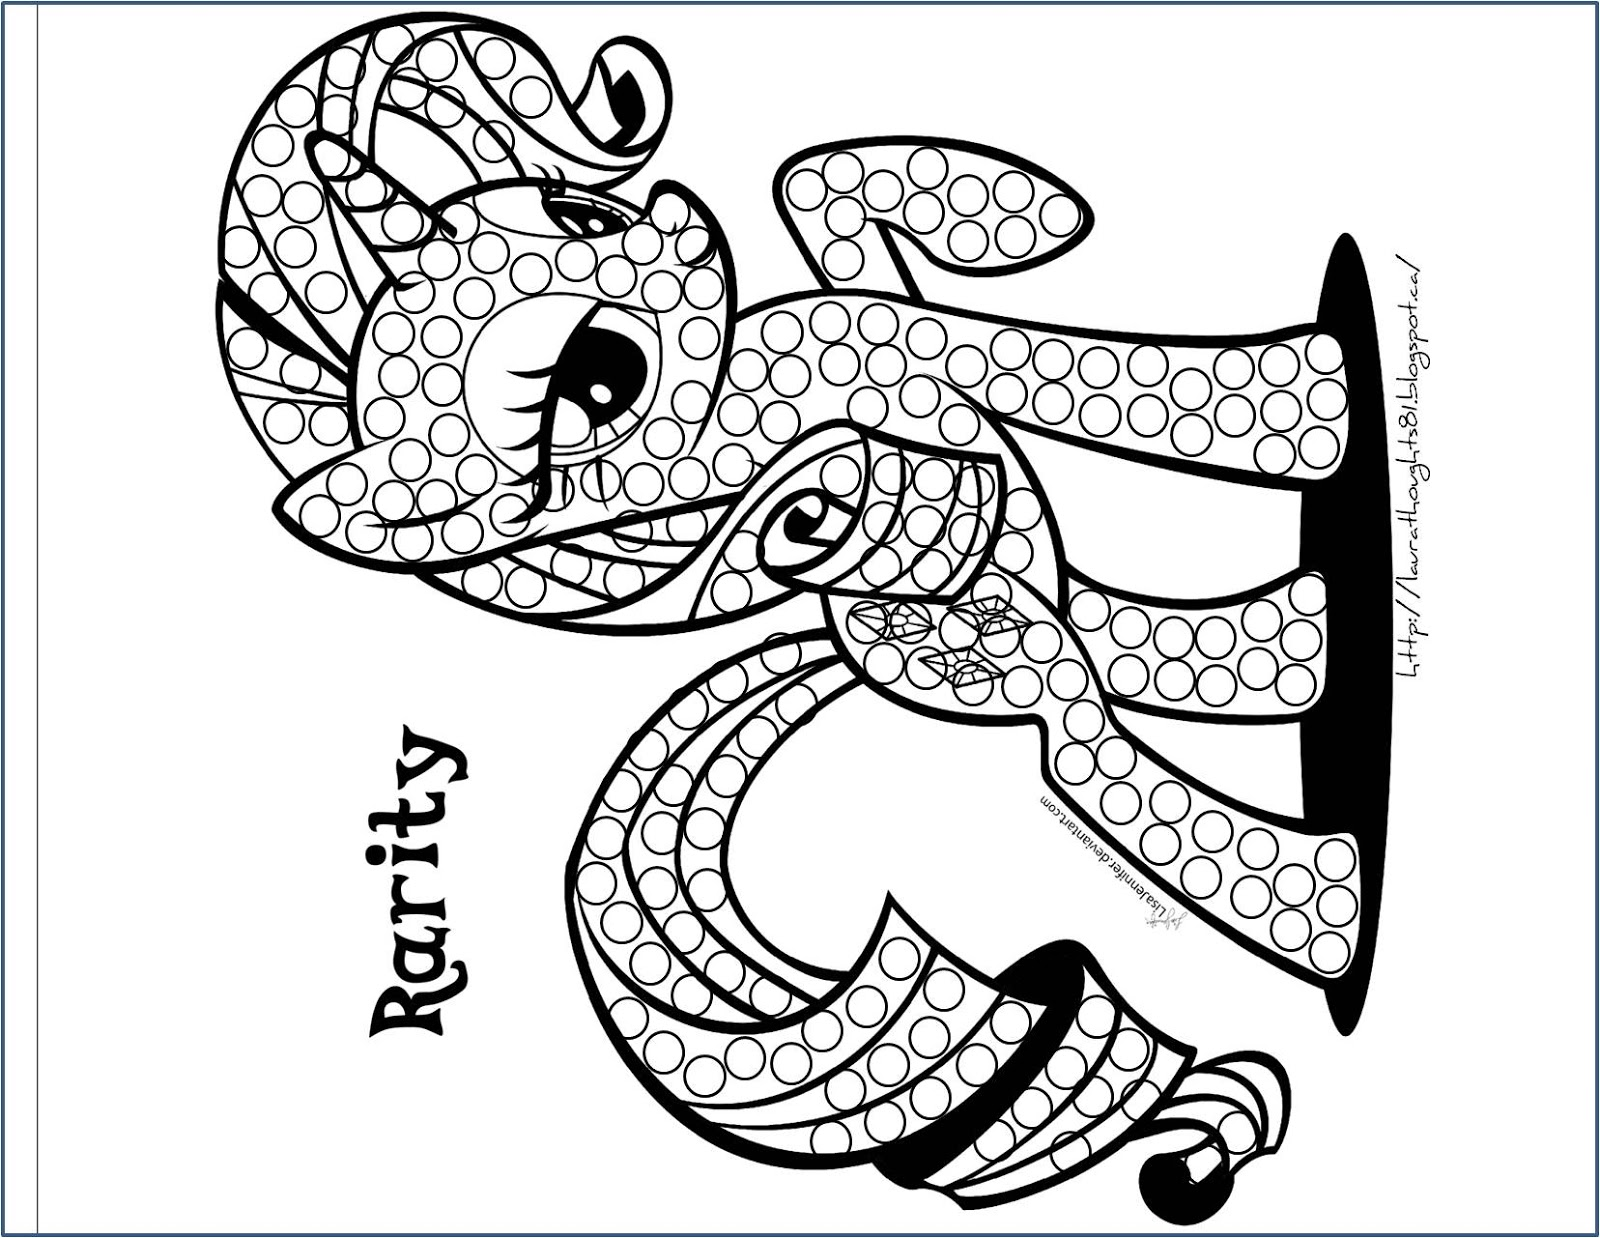 q tip coloring pages - photo #9